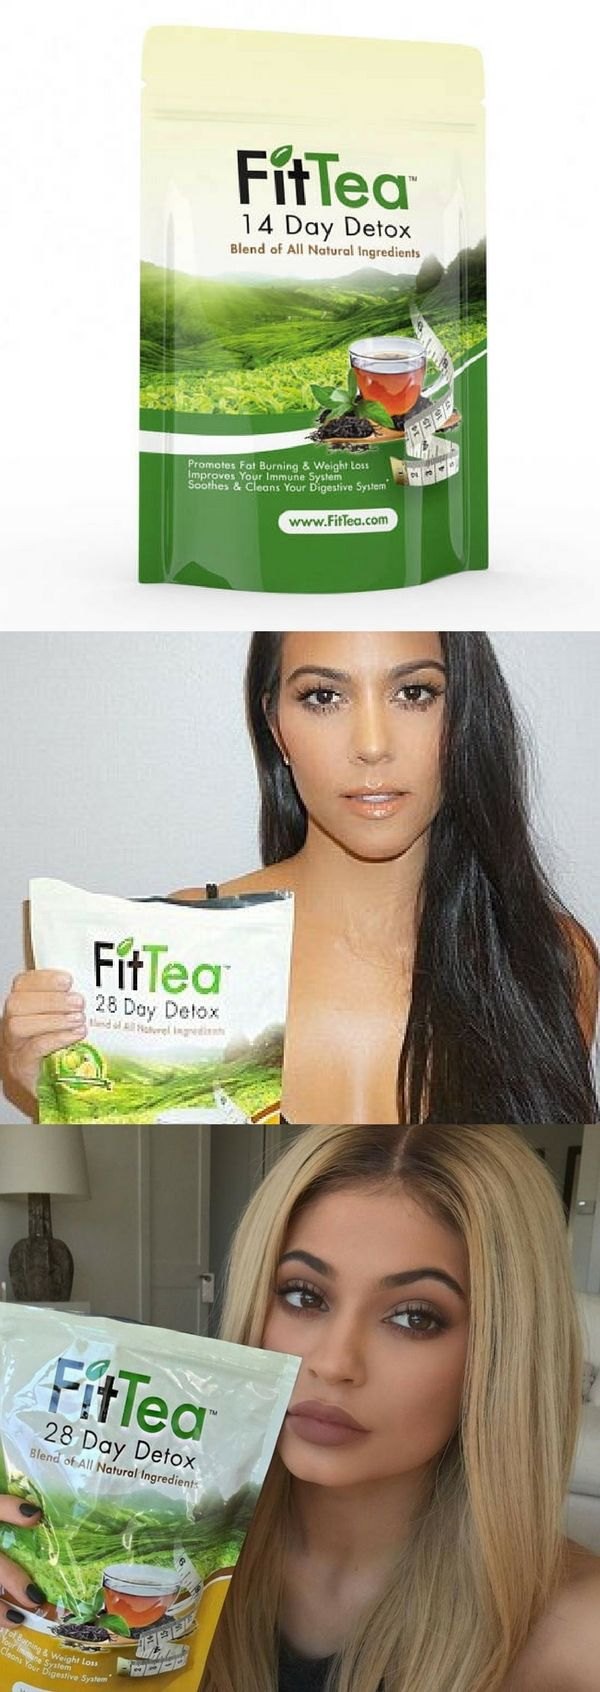 kourtney kardashian and kylie jenner Fit Tea 14 day tea Detox teatox fat burning (factory sealed) weight loss recipe goal tips fit tea #affiliate #kourtneykardashian #kylierjenner #fittea #fitness #flattummy #beforeandafter #trend #viral #itworks #teatox